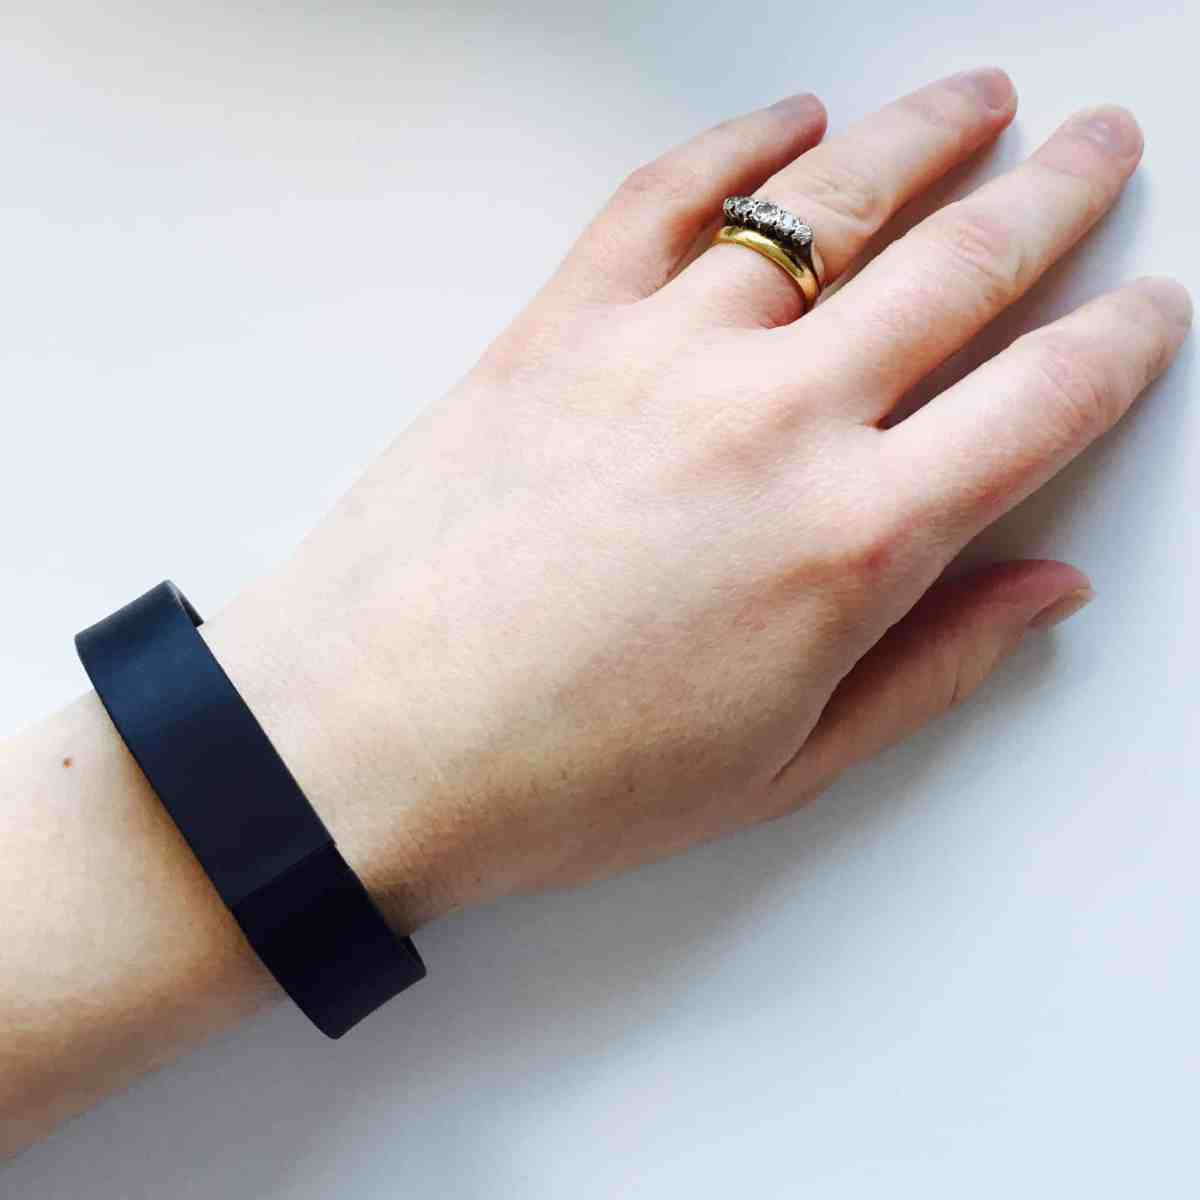 Becky's hand with a FitBit